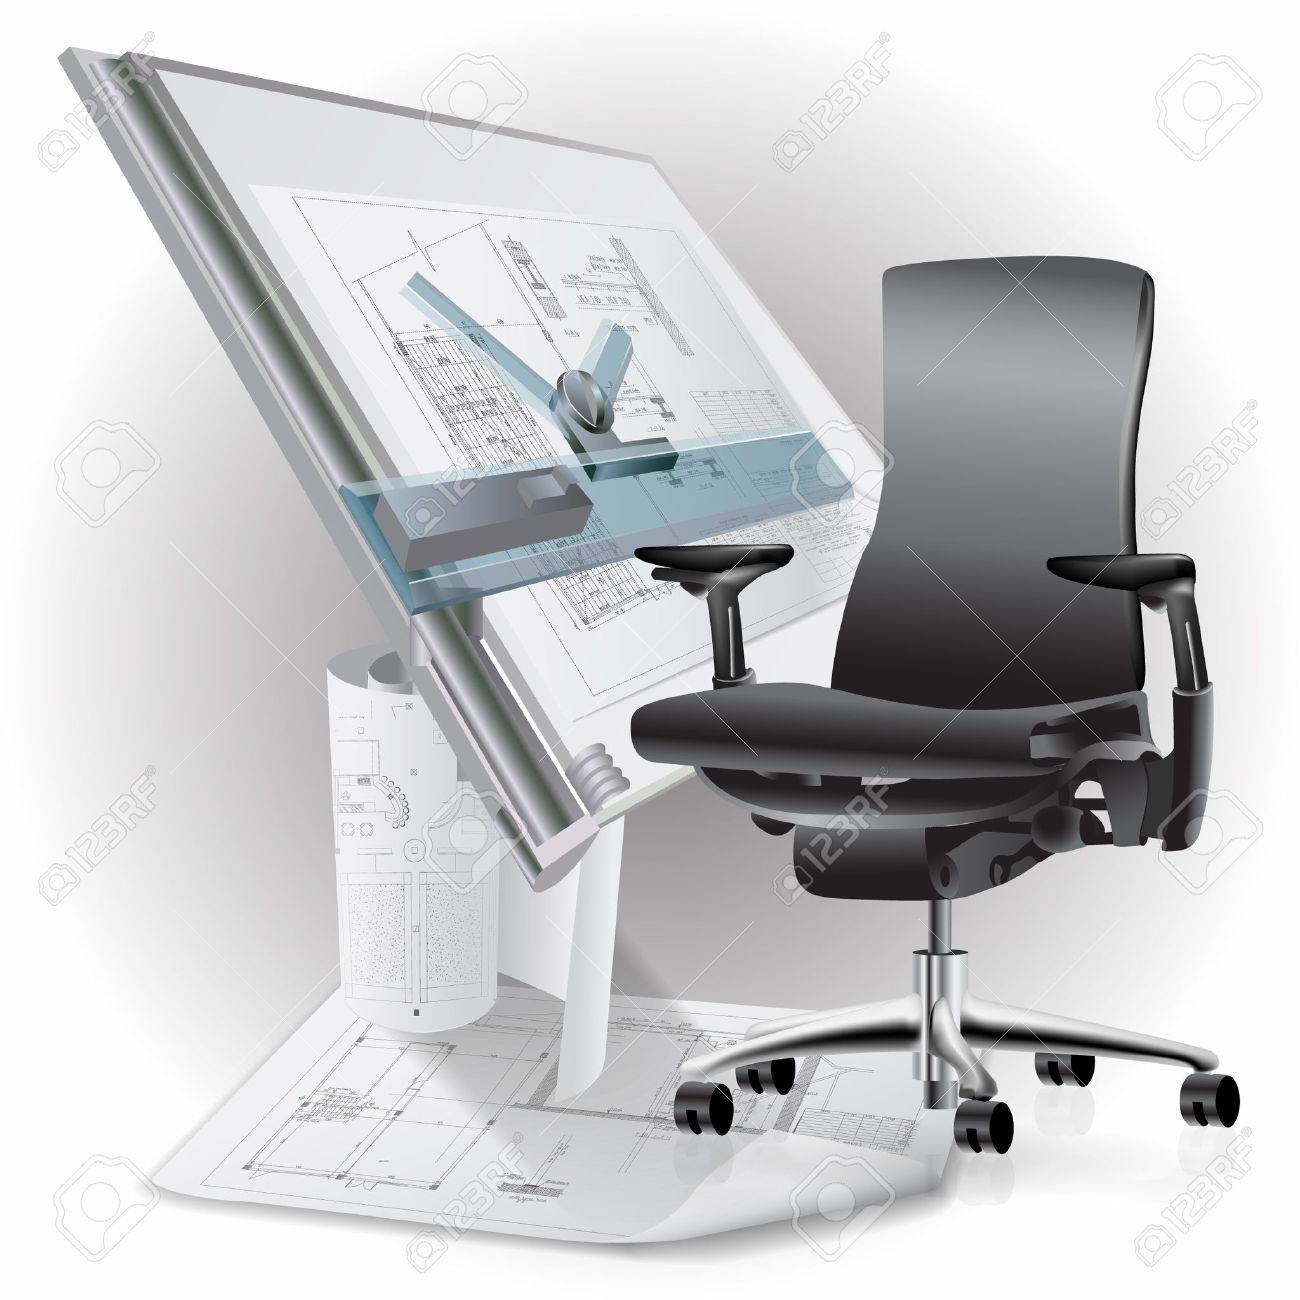 Part of office interior with a chair and architectural drawings - 15141998